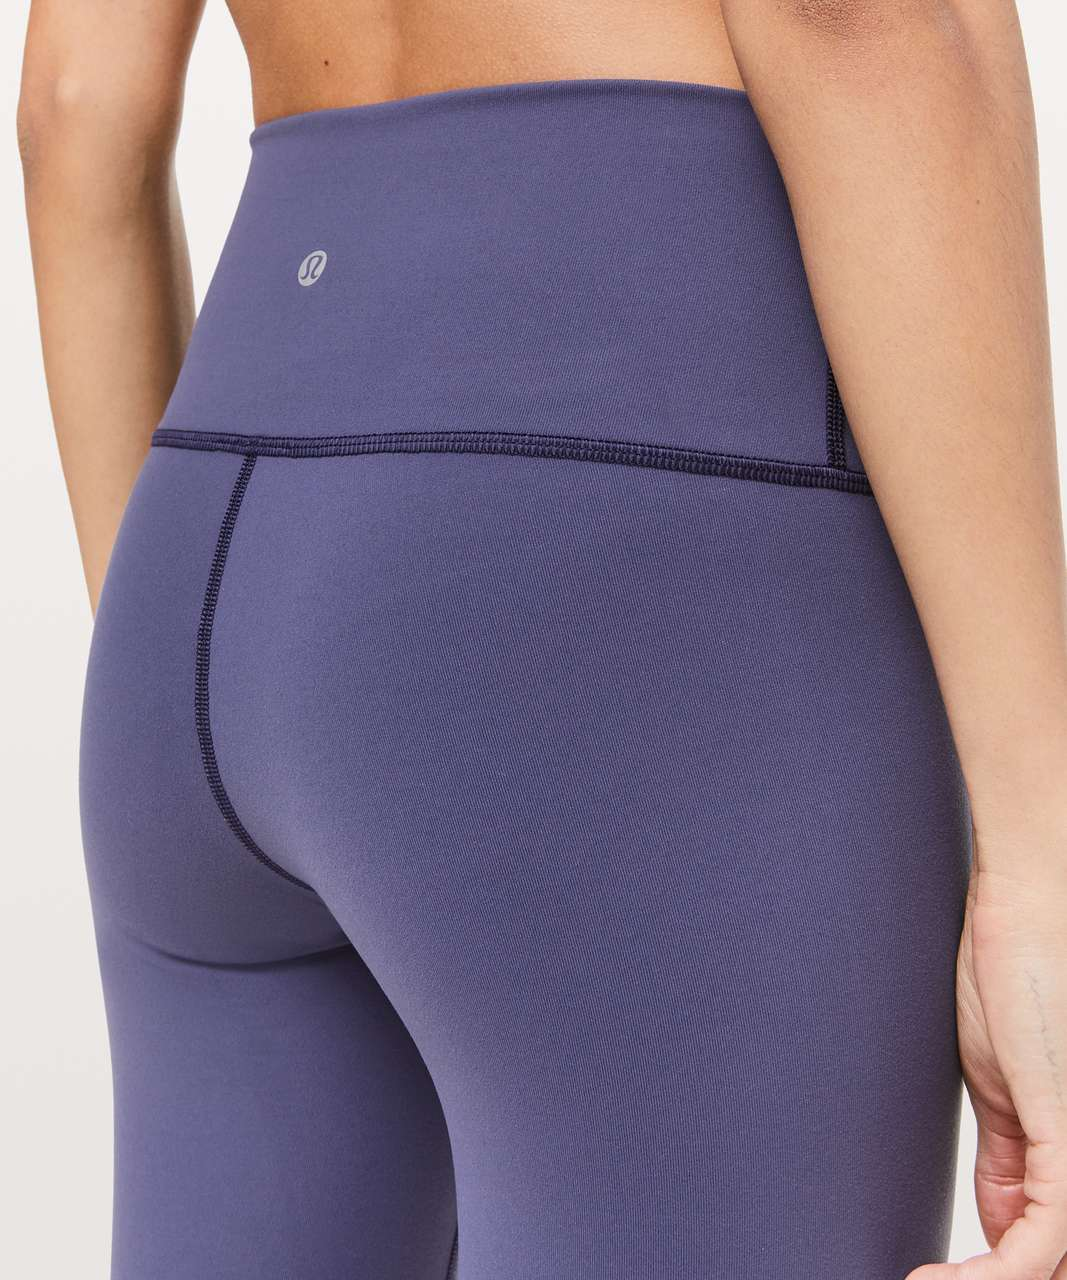 "Lululemon Wunder Under High-Rise 7/8 Tight *Full-On Luon 25"" - Gatsby Blue"